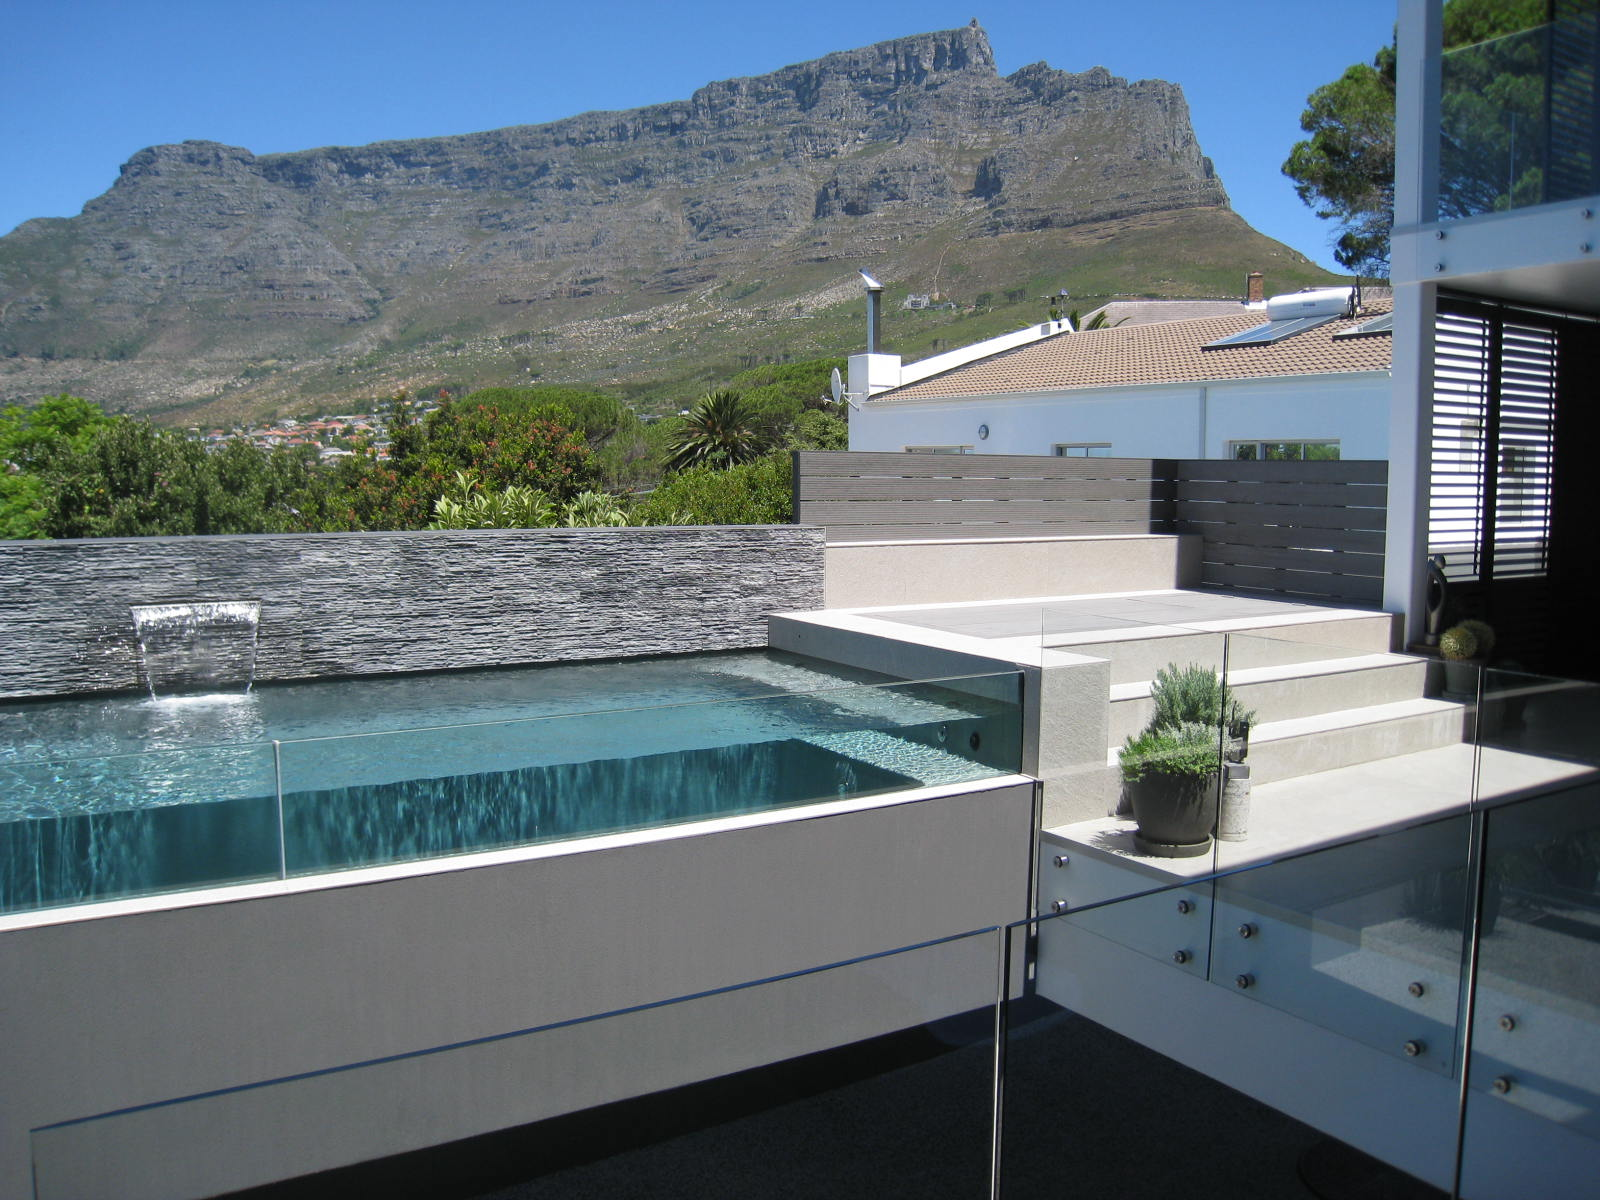 Bayview House at the foot of Table Mountain